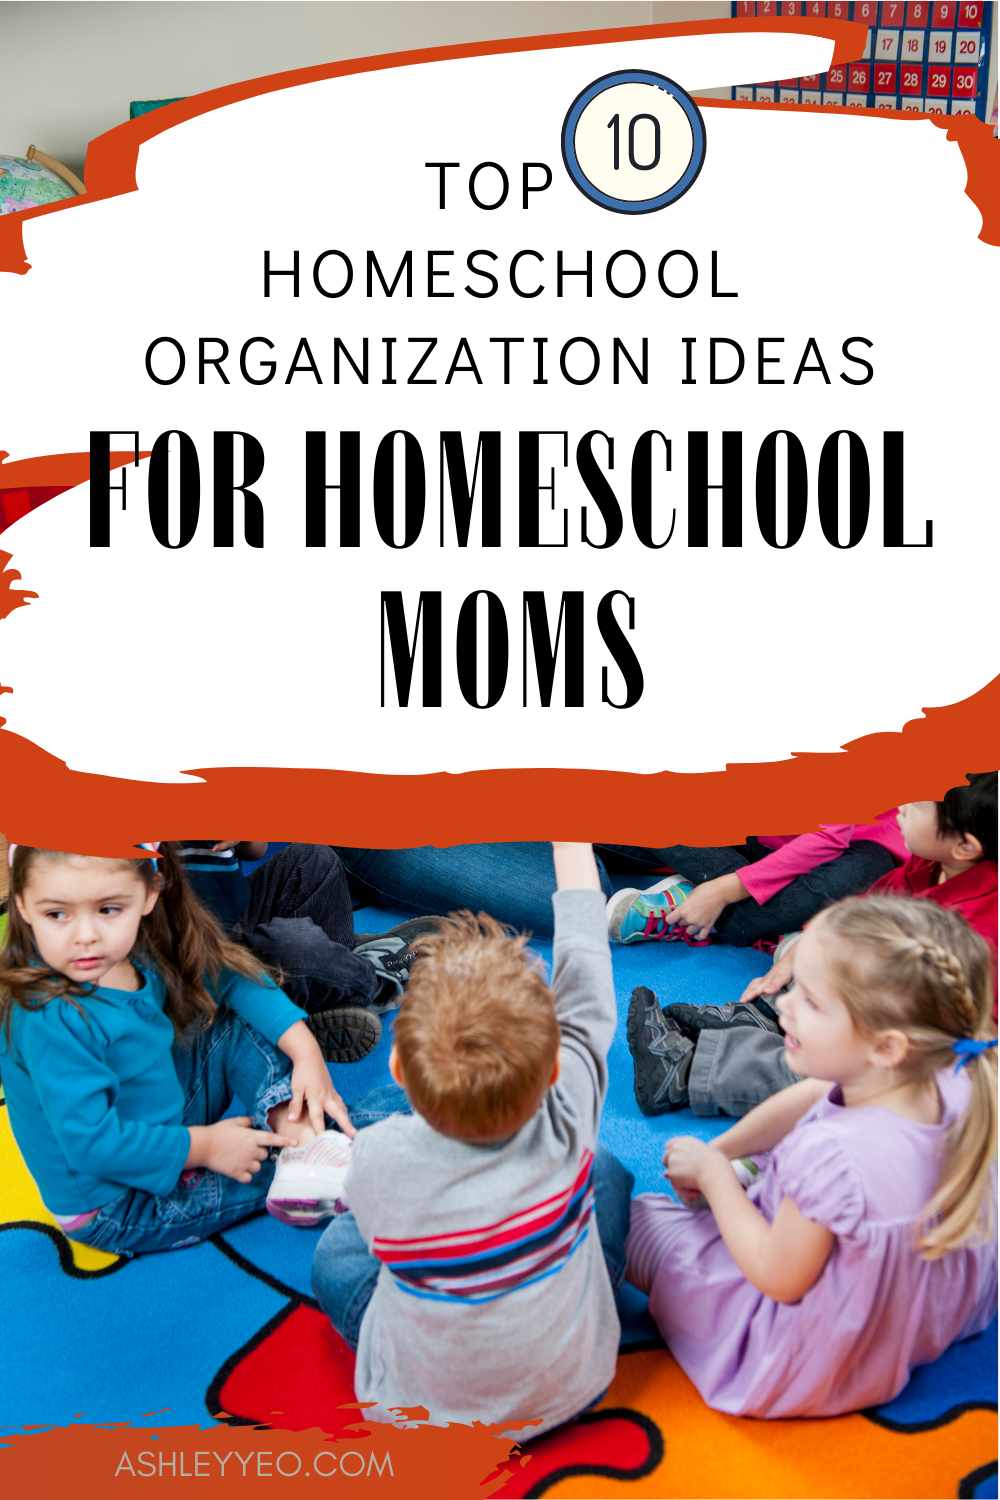 Top 10 Homeschool Organization Ideas For Your Homeschool